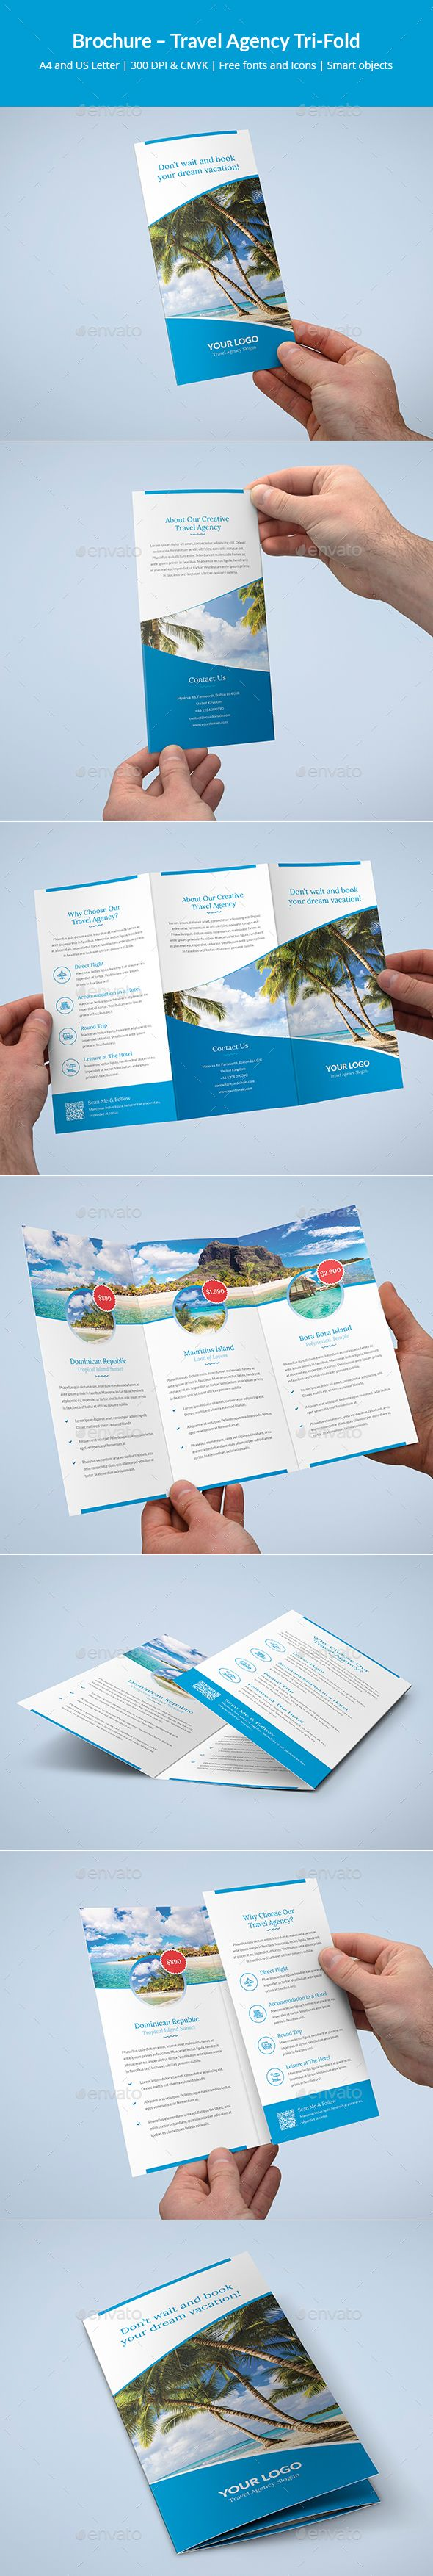 Brochure �20Travel Agency Tri-Fold by artbart This is a brochure for many applications. You can easily edit and adapt to your business, as well as travel agency, travel office,